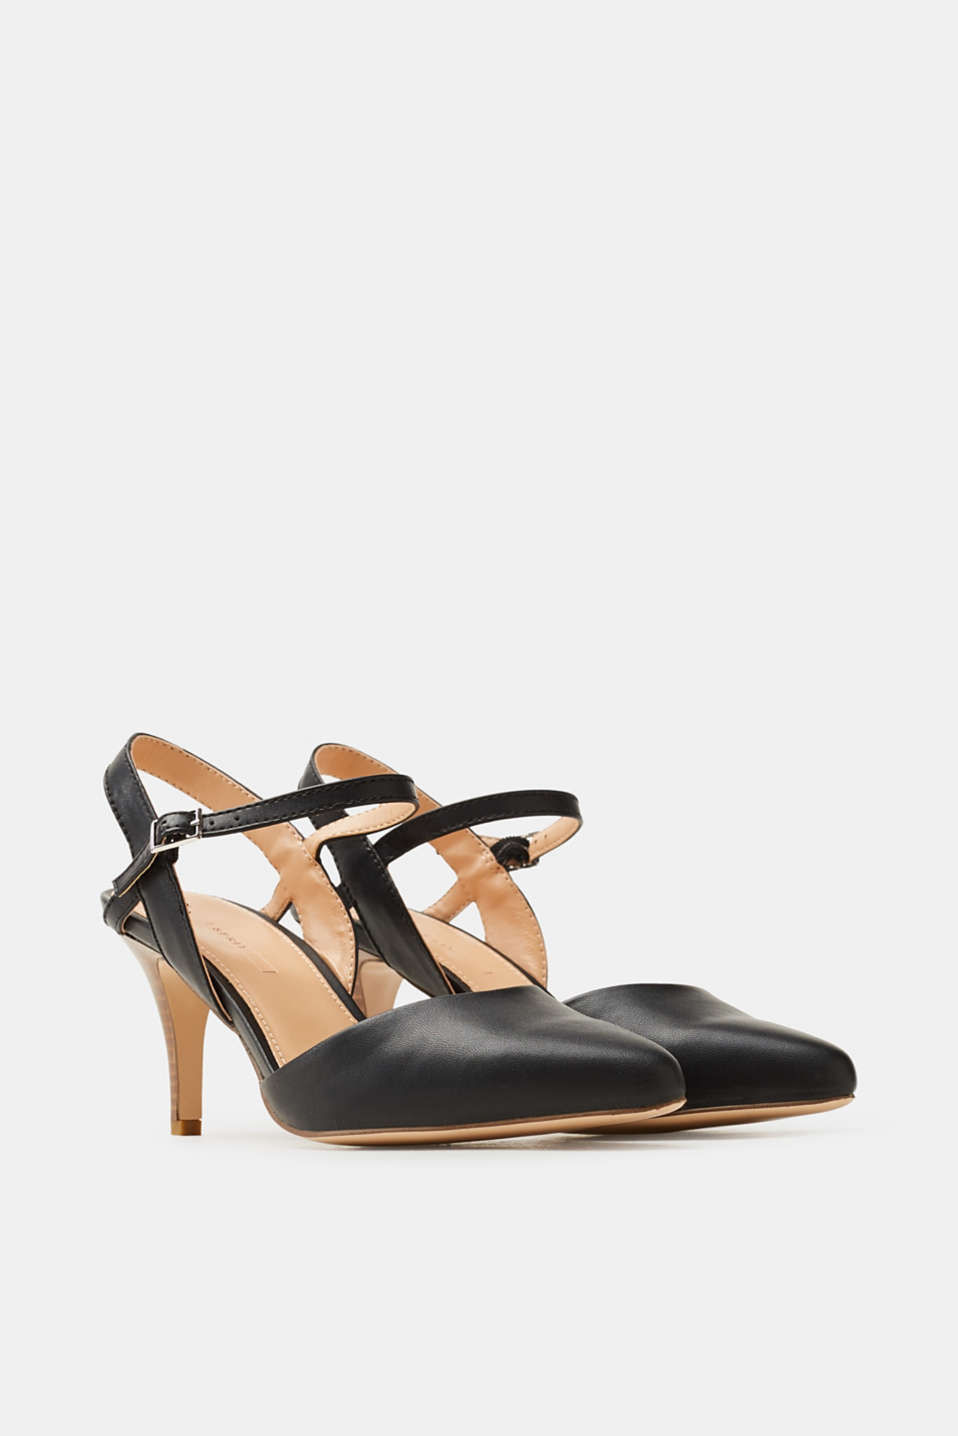 Pointed slingback court shoes, faux leather